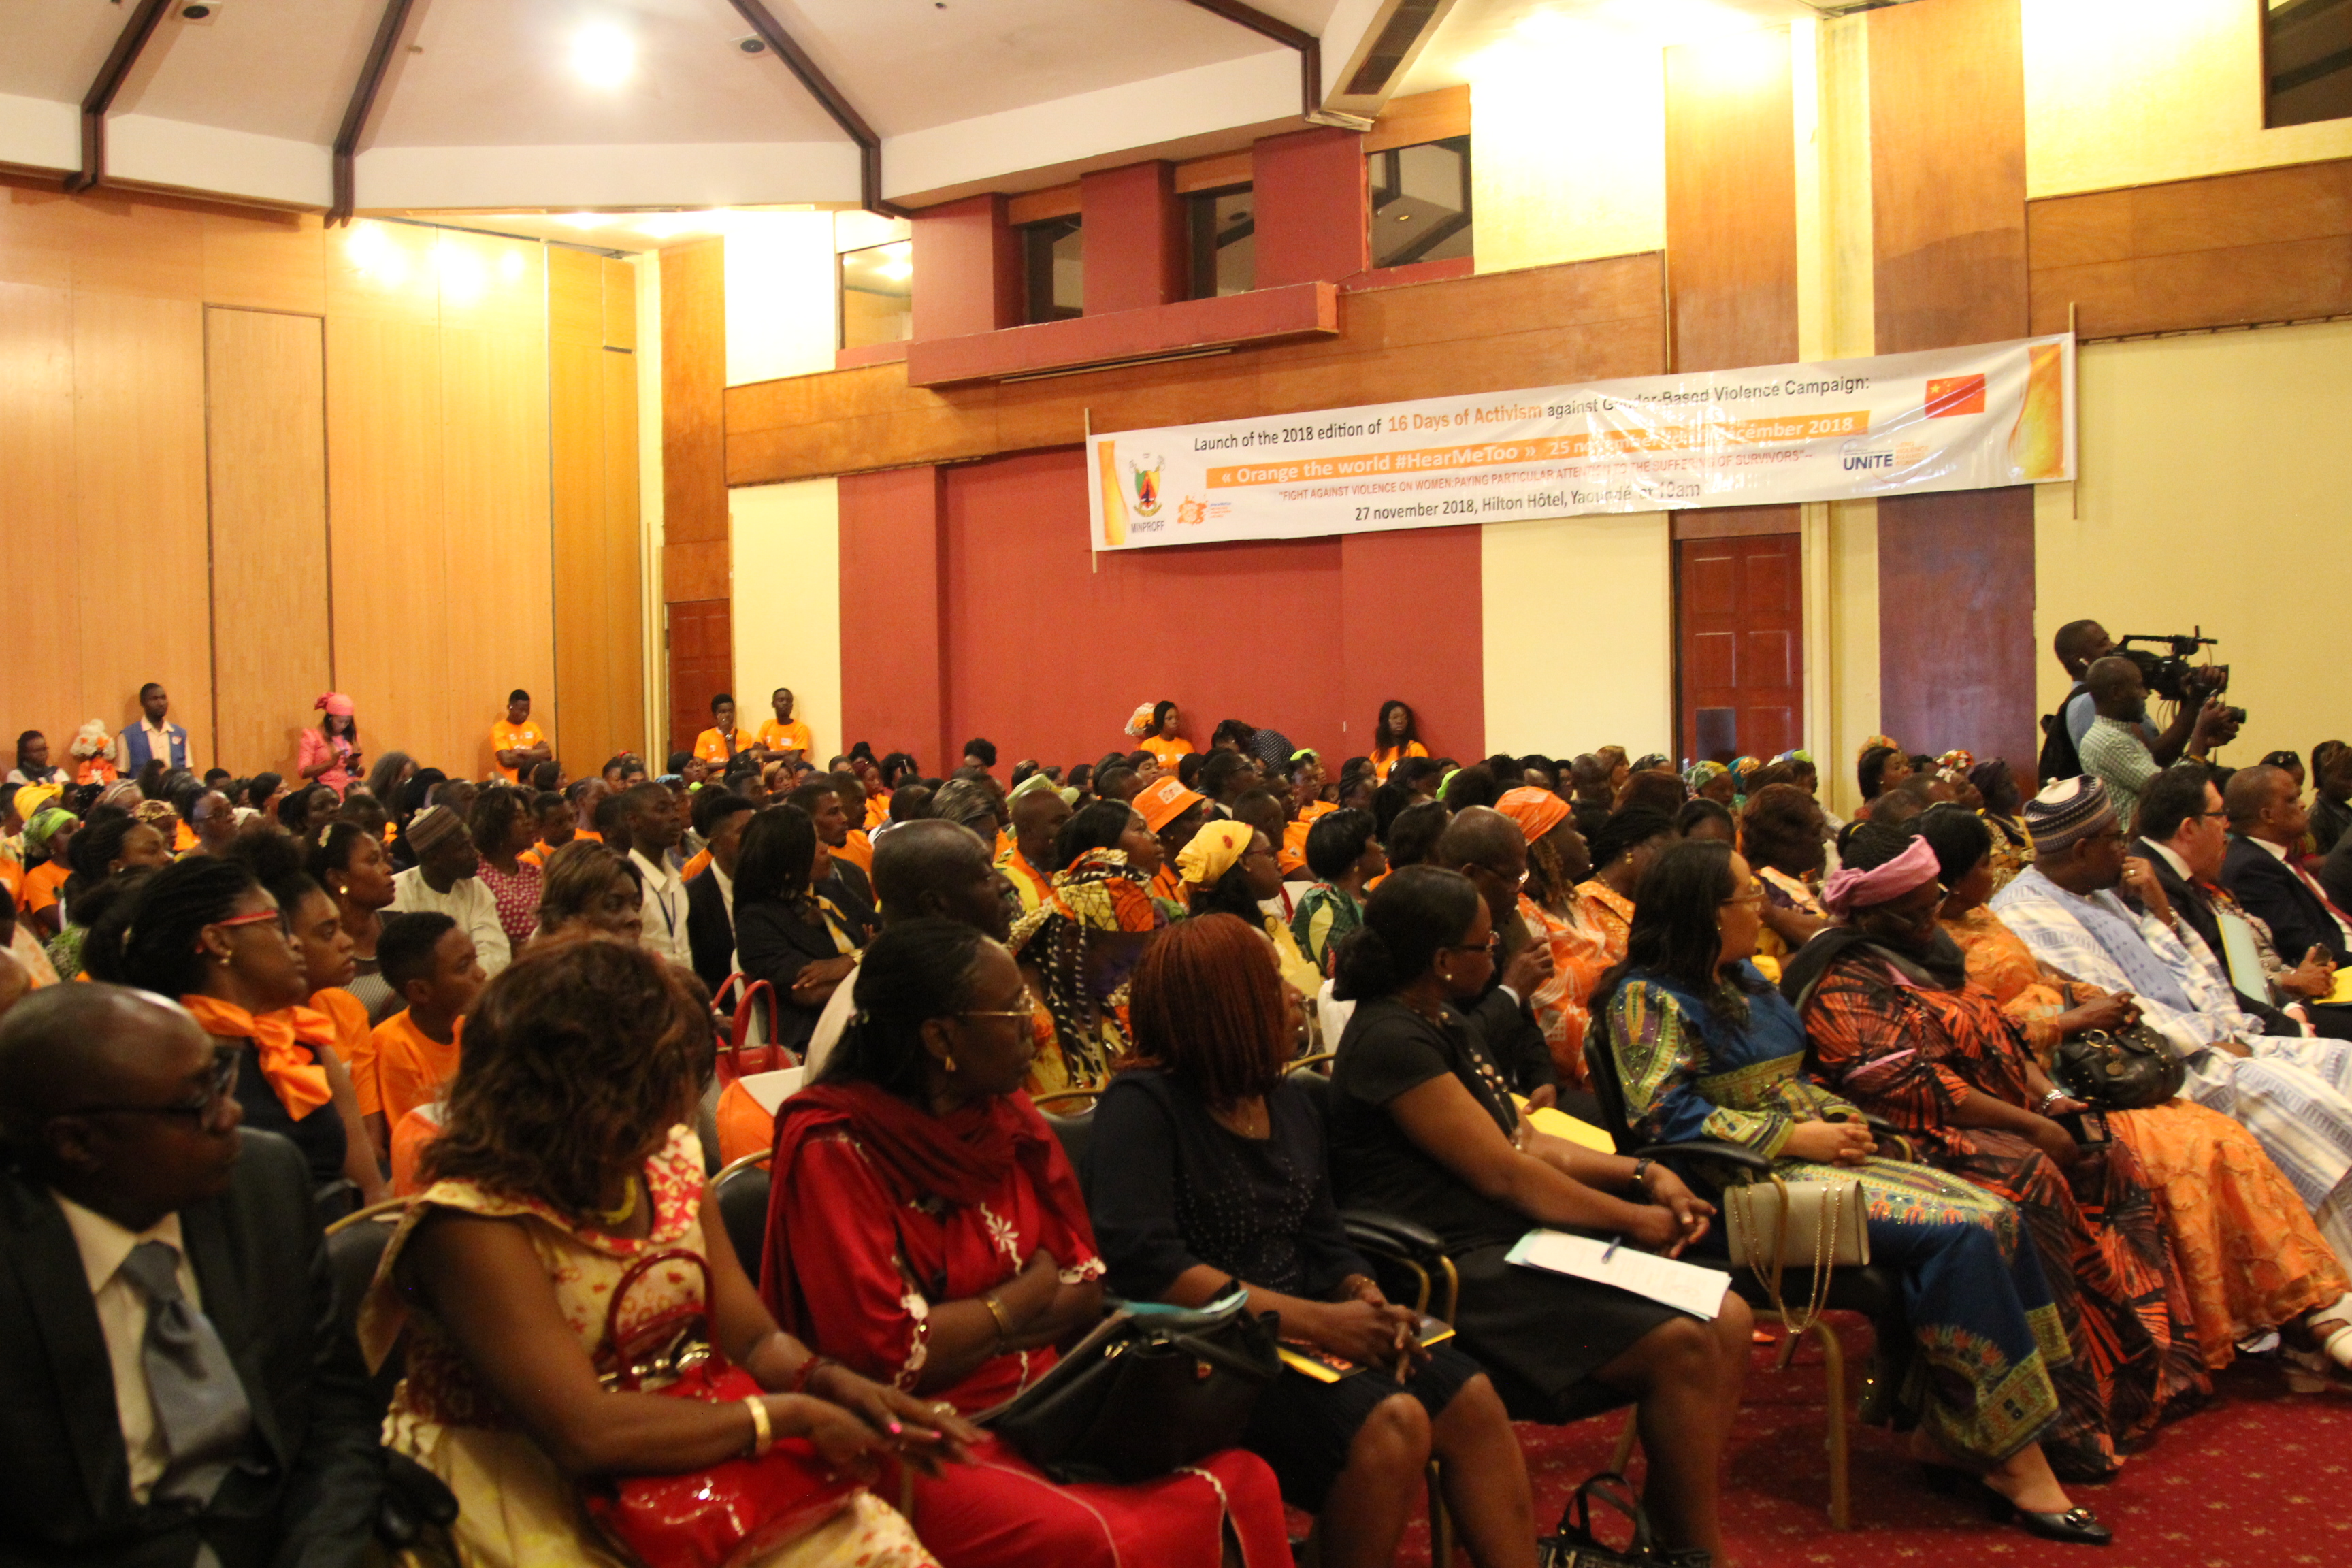 A cross section of participants at the official launched of the 16 days of activism campaign to end violence against women and girls in Cameroon. Photo credit: Teclaire Same/UN Women